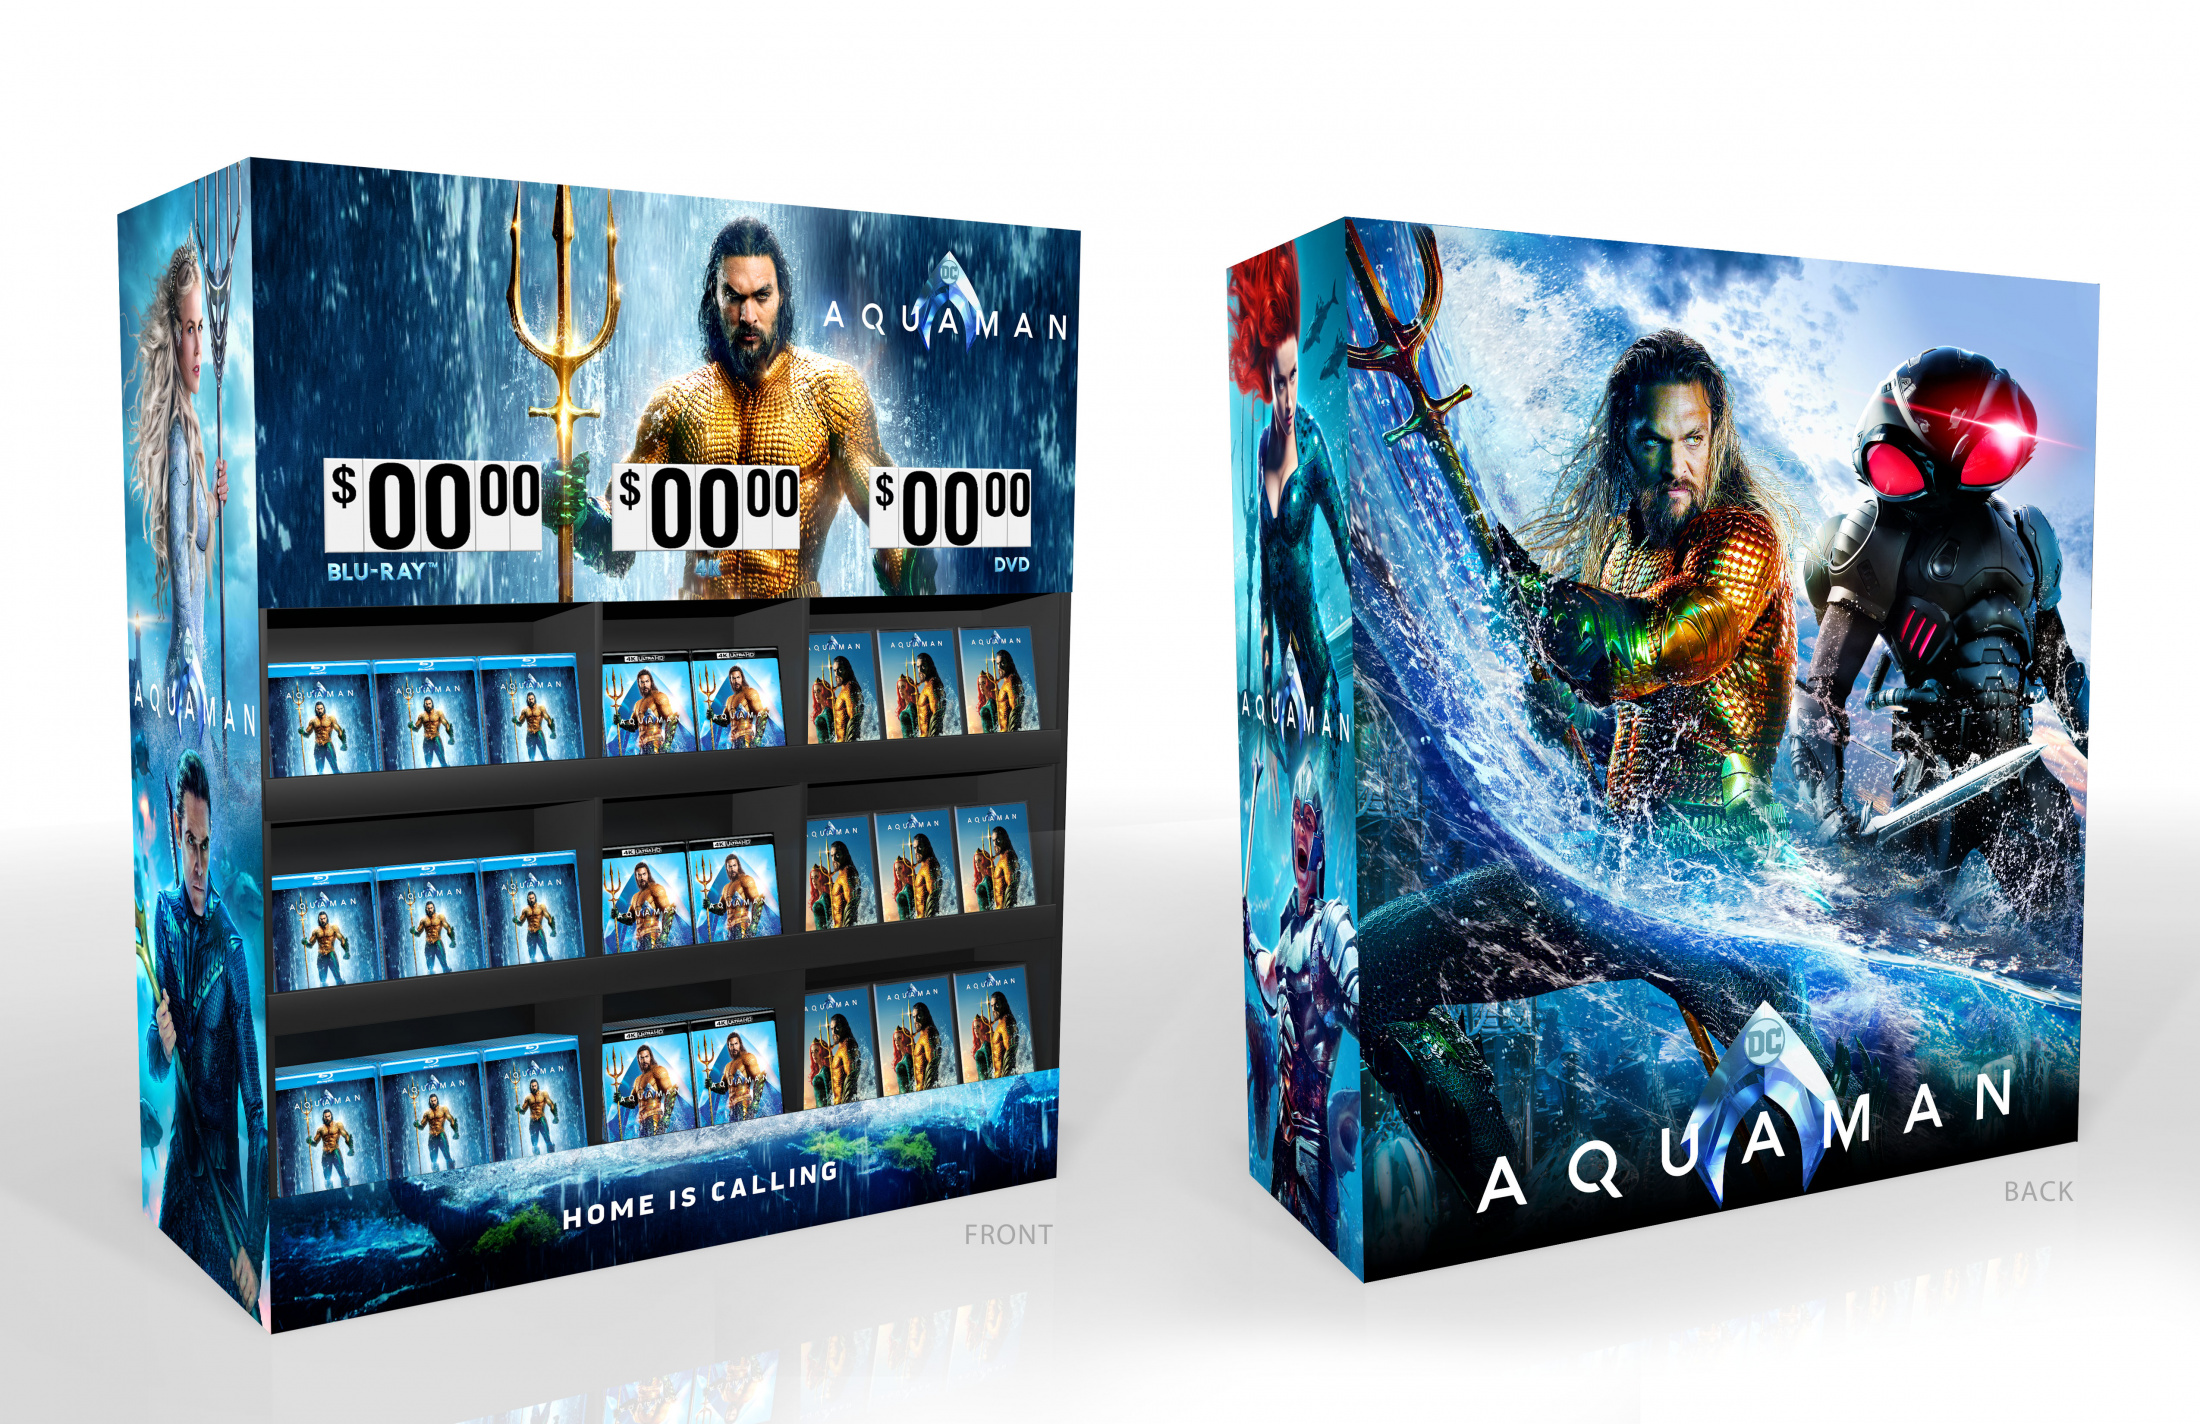 Image Media for Aquaman Home Entertainment Walmart Display Home Video Cube